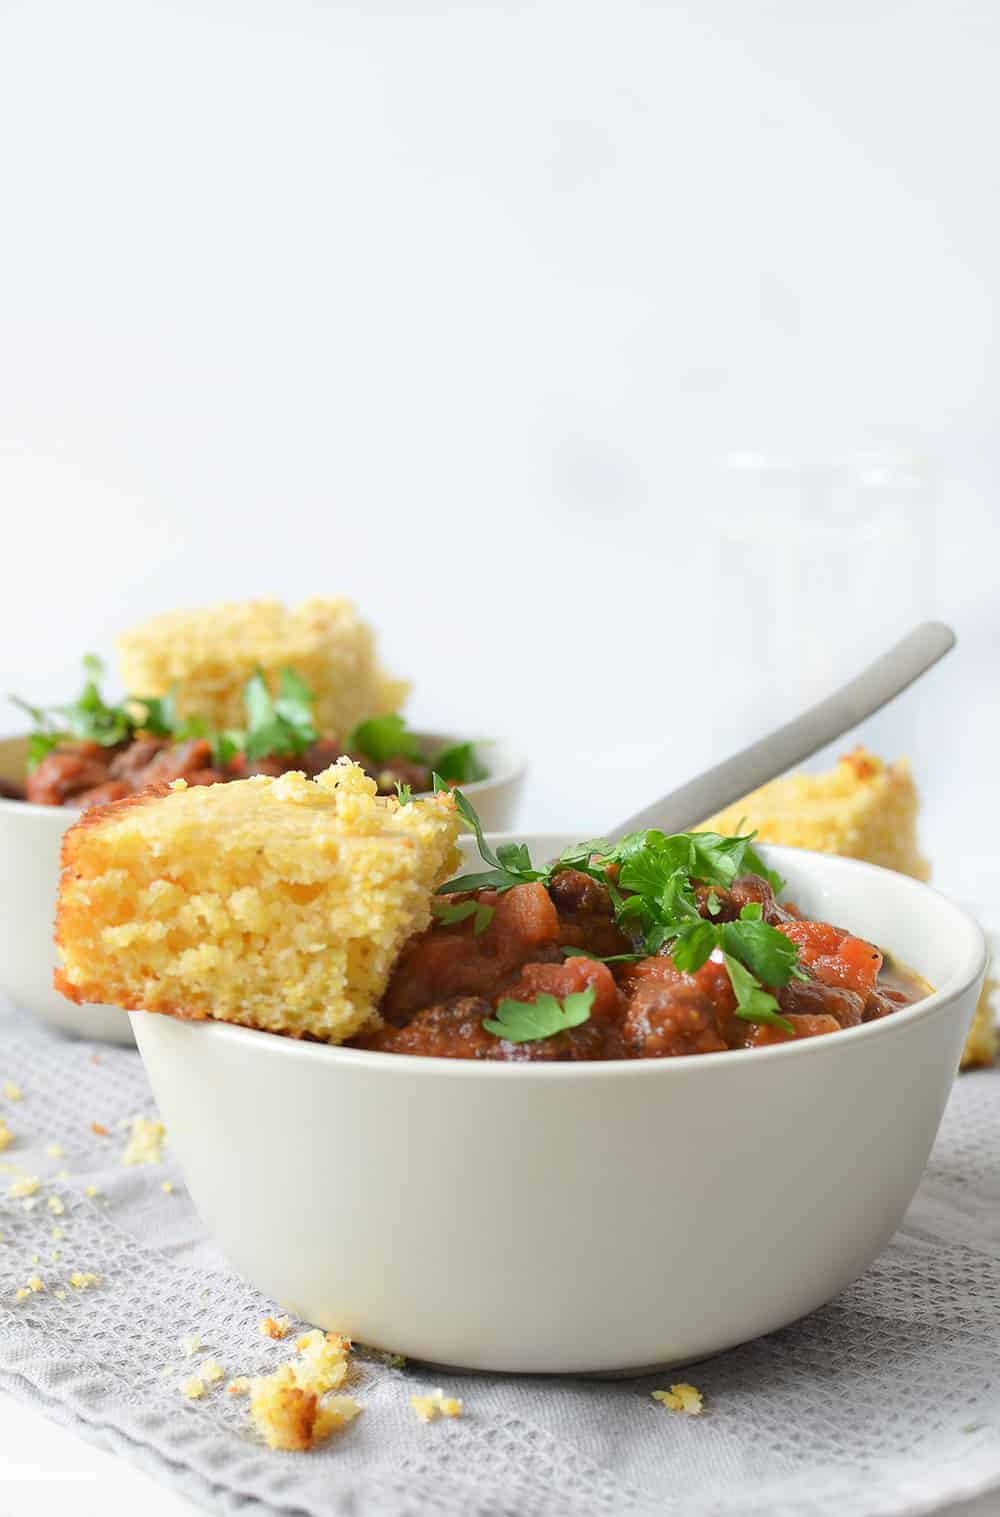 Pumpkin Chili with Cornbread3notext